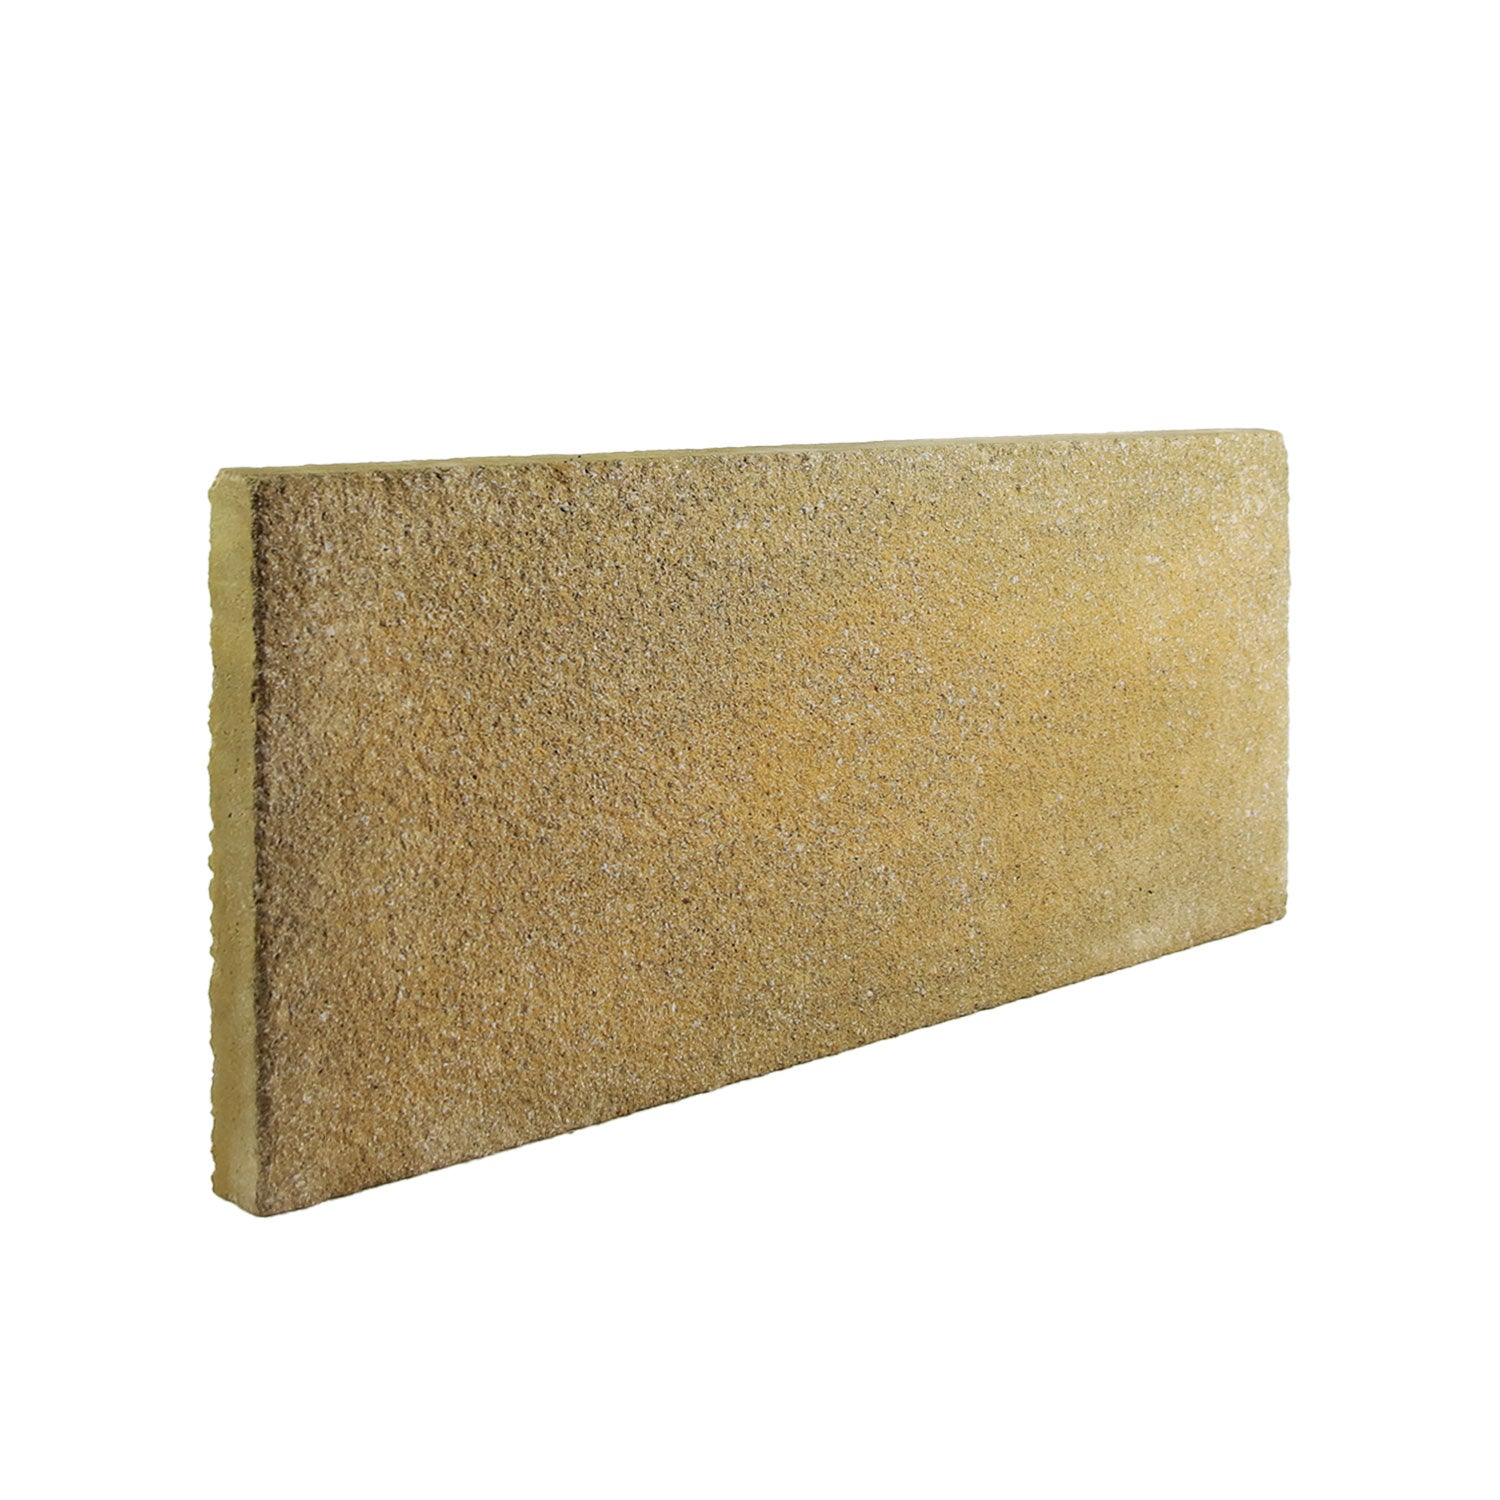 Textured Slab Yellow 600mm x 300mm